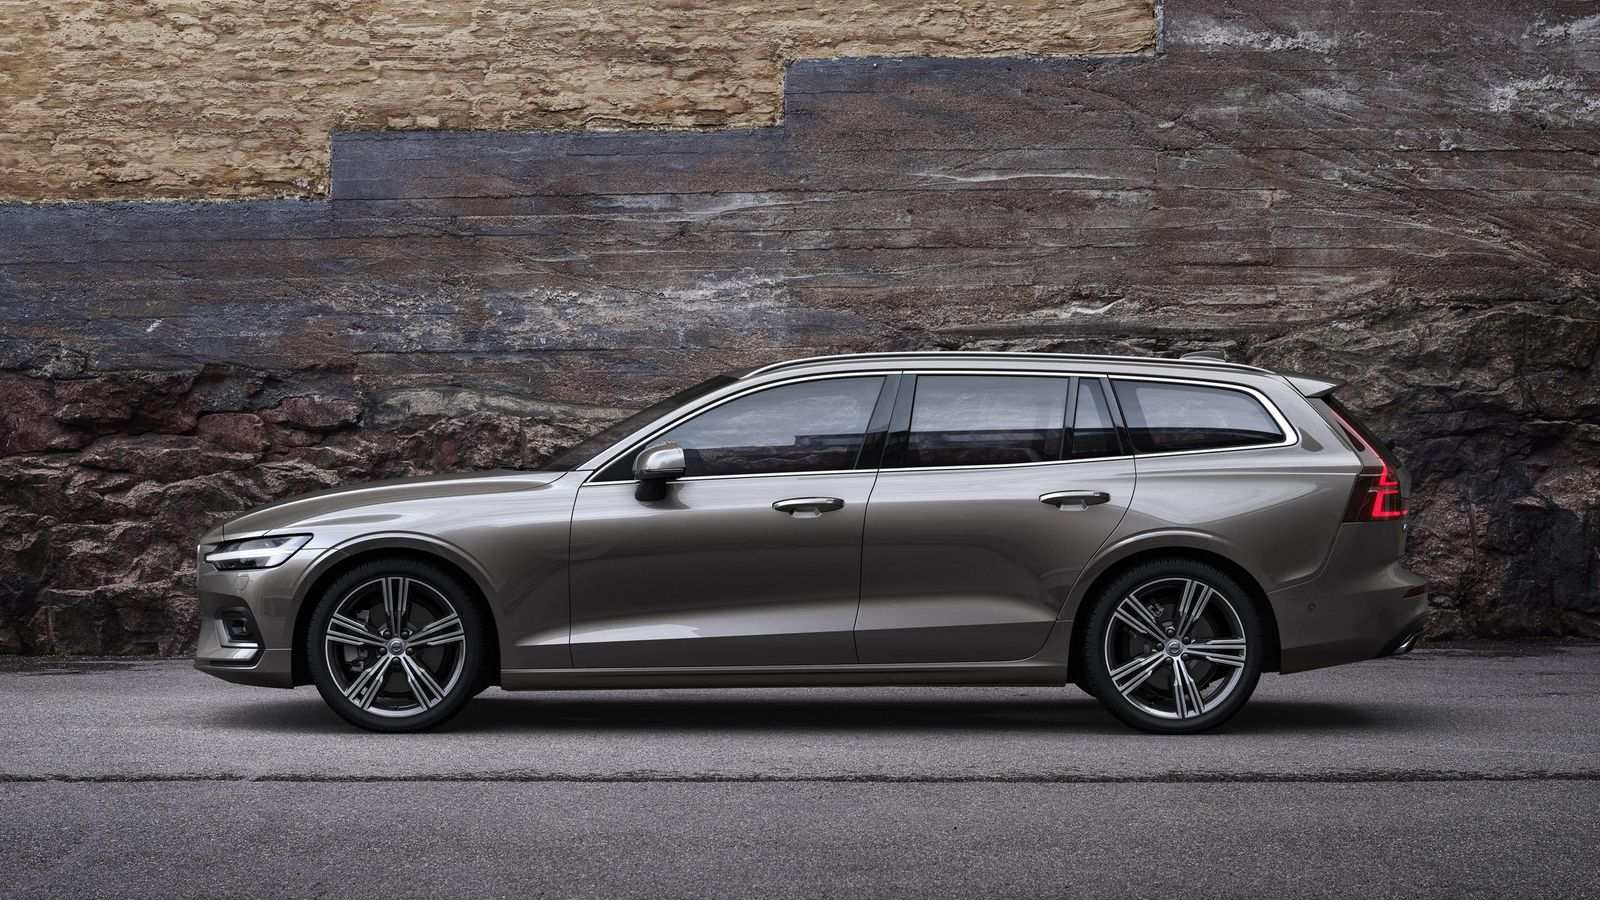 71 All New Volvo S60 2019 Hybrid Price Design And Review